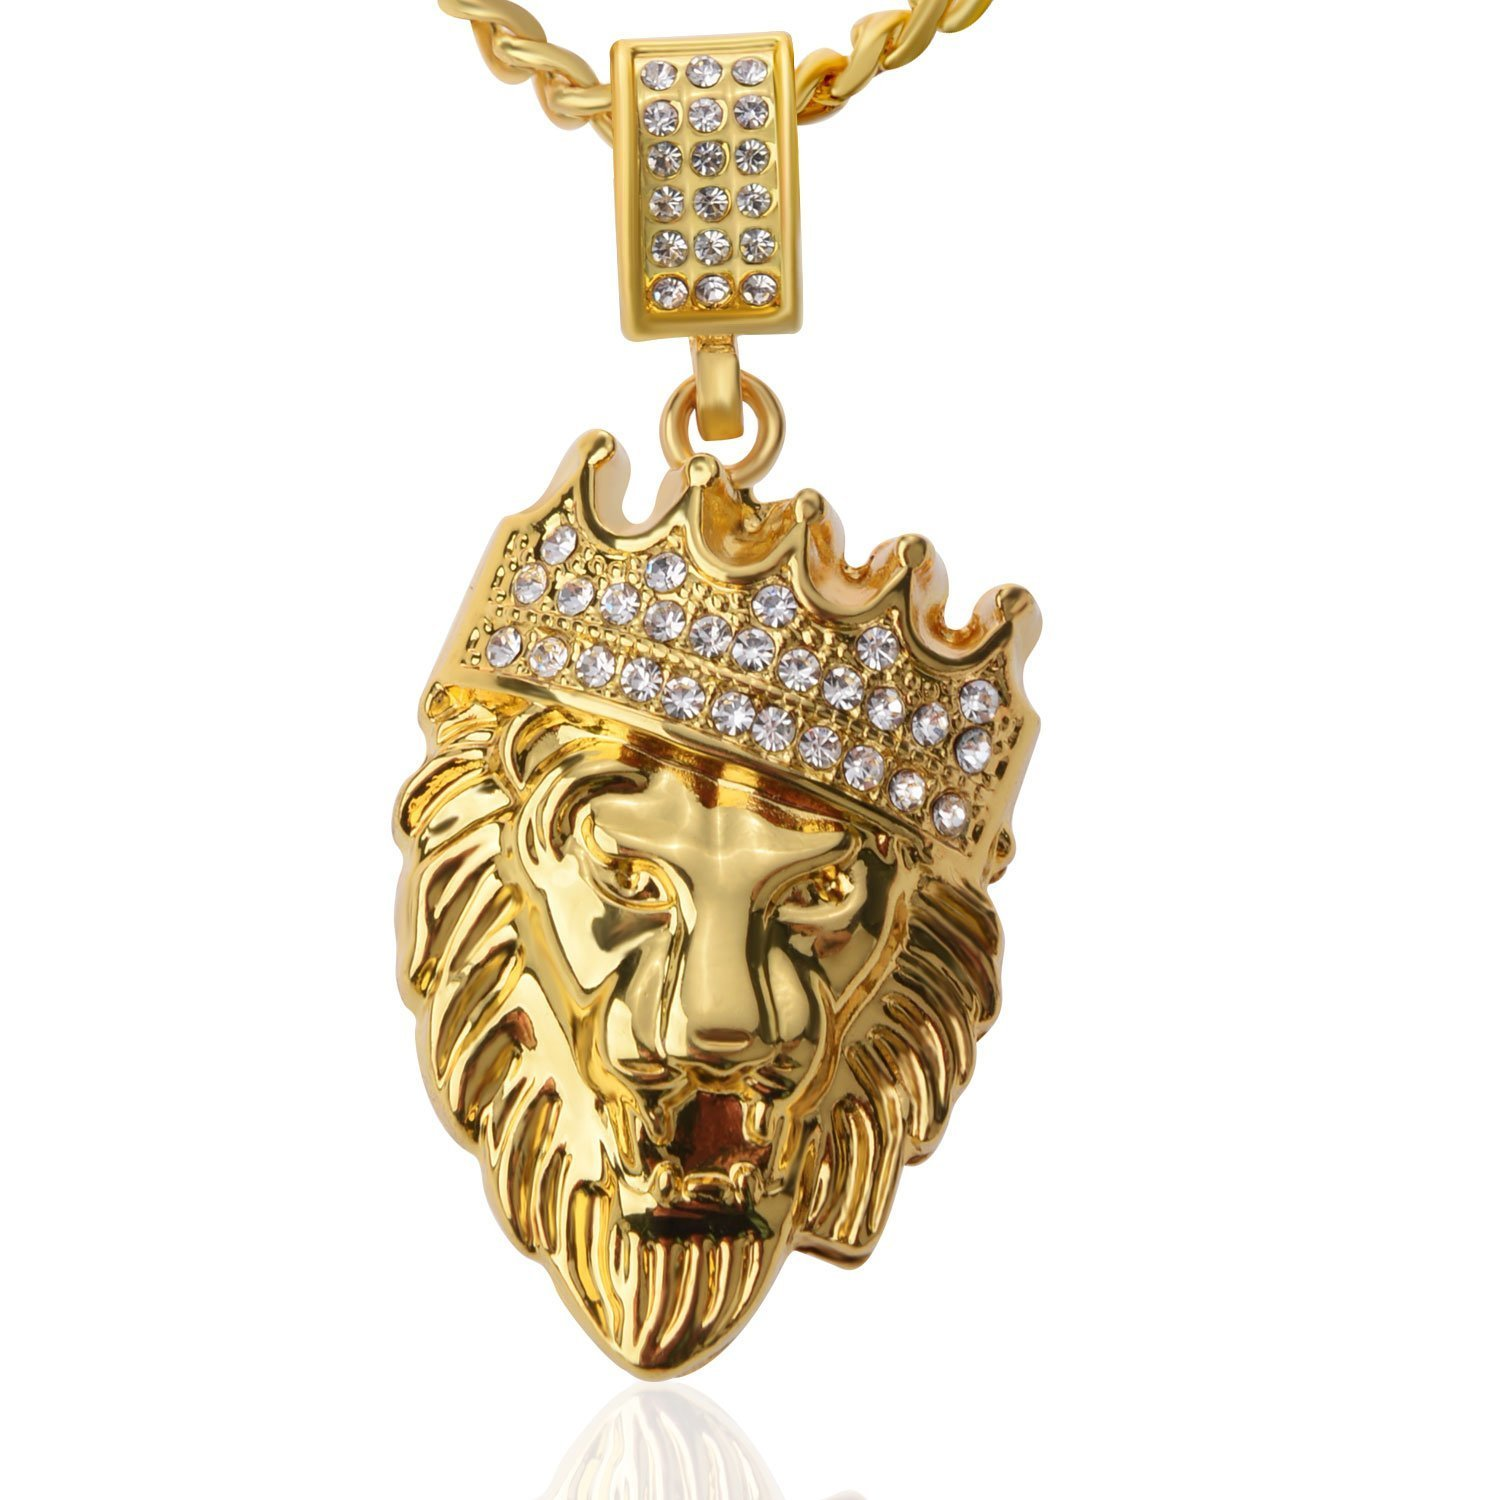 f5a3ef623458 Mens Womens Hip Hop Jewelry 18k Gold Plated Crown Lion Head Pendant Iced  Out Clear Rhinestones with Curb Cuban Chain Necklace